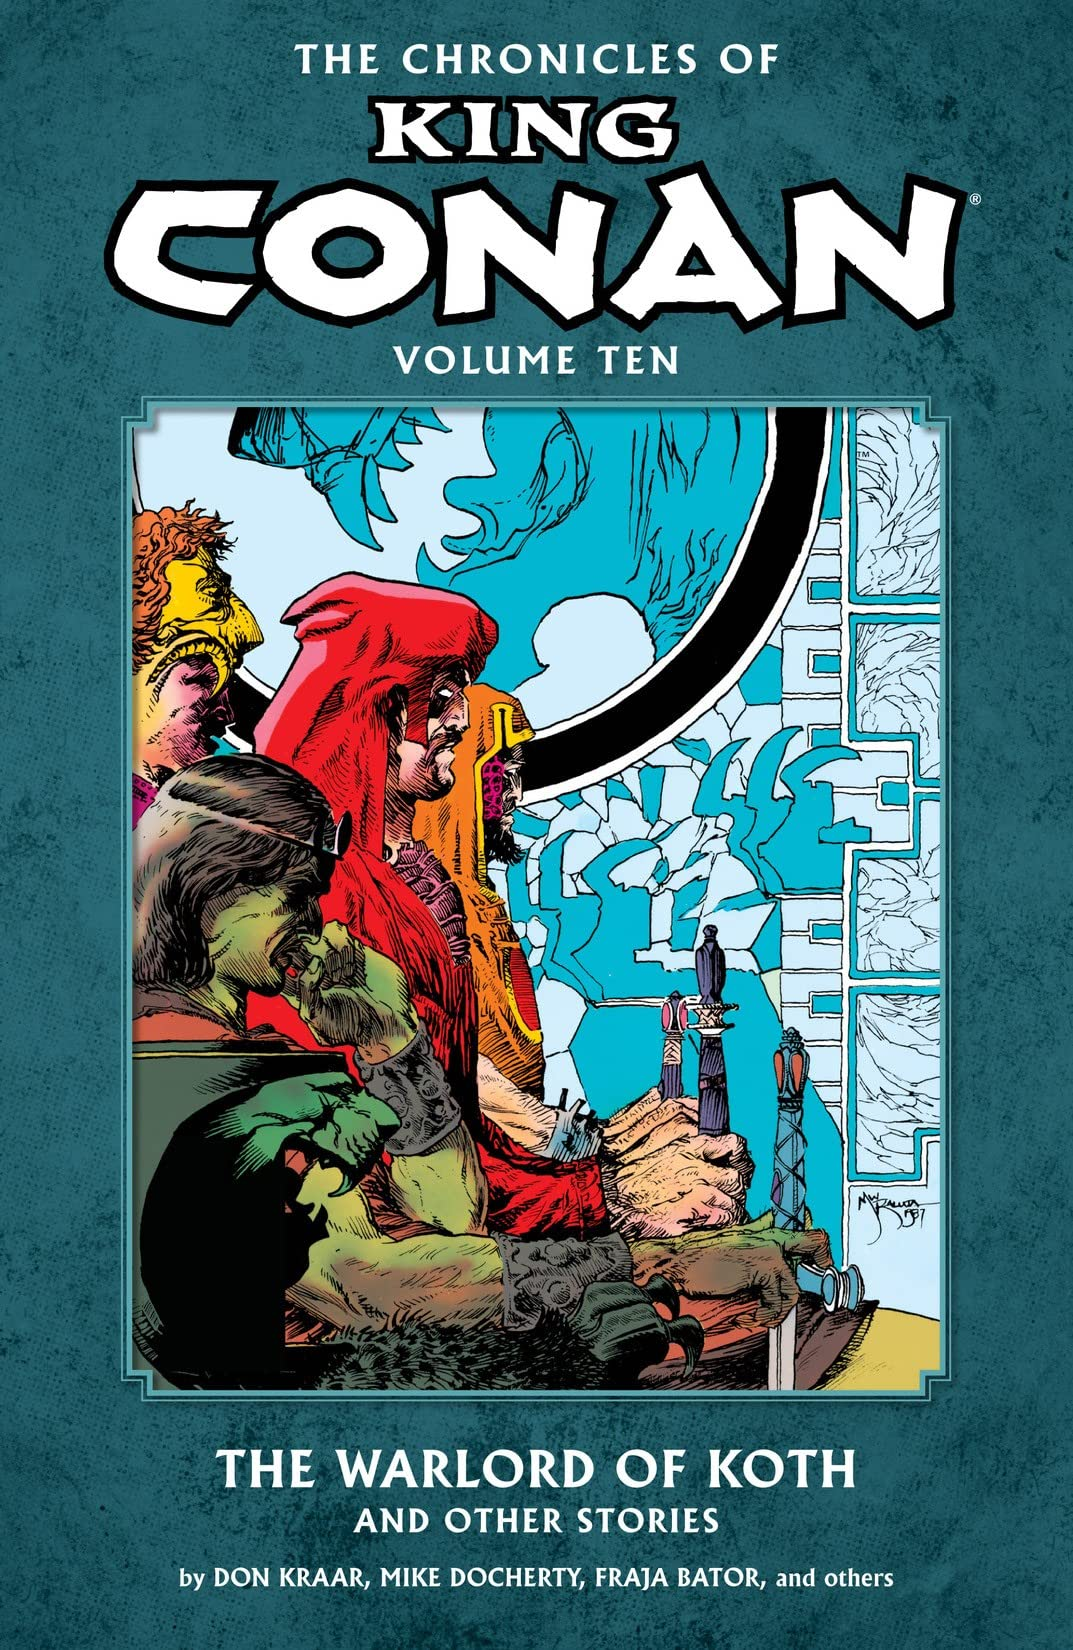 The Chronicles of King Conan Vol. 10: The Warlord of Koth